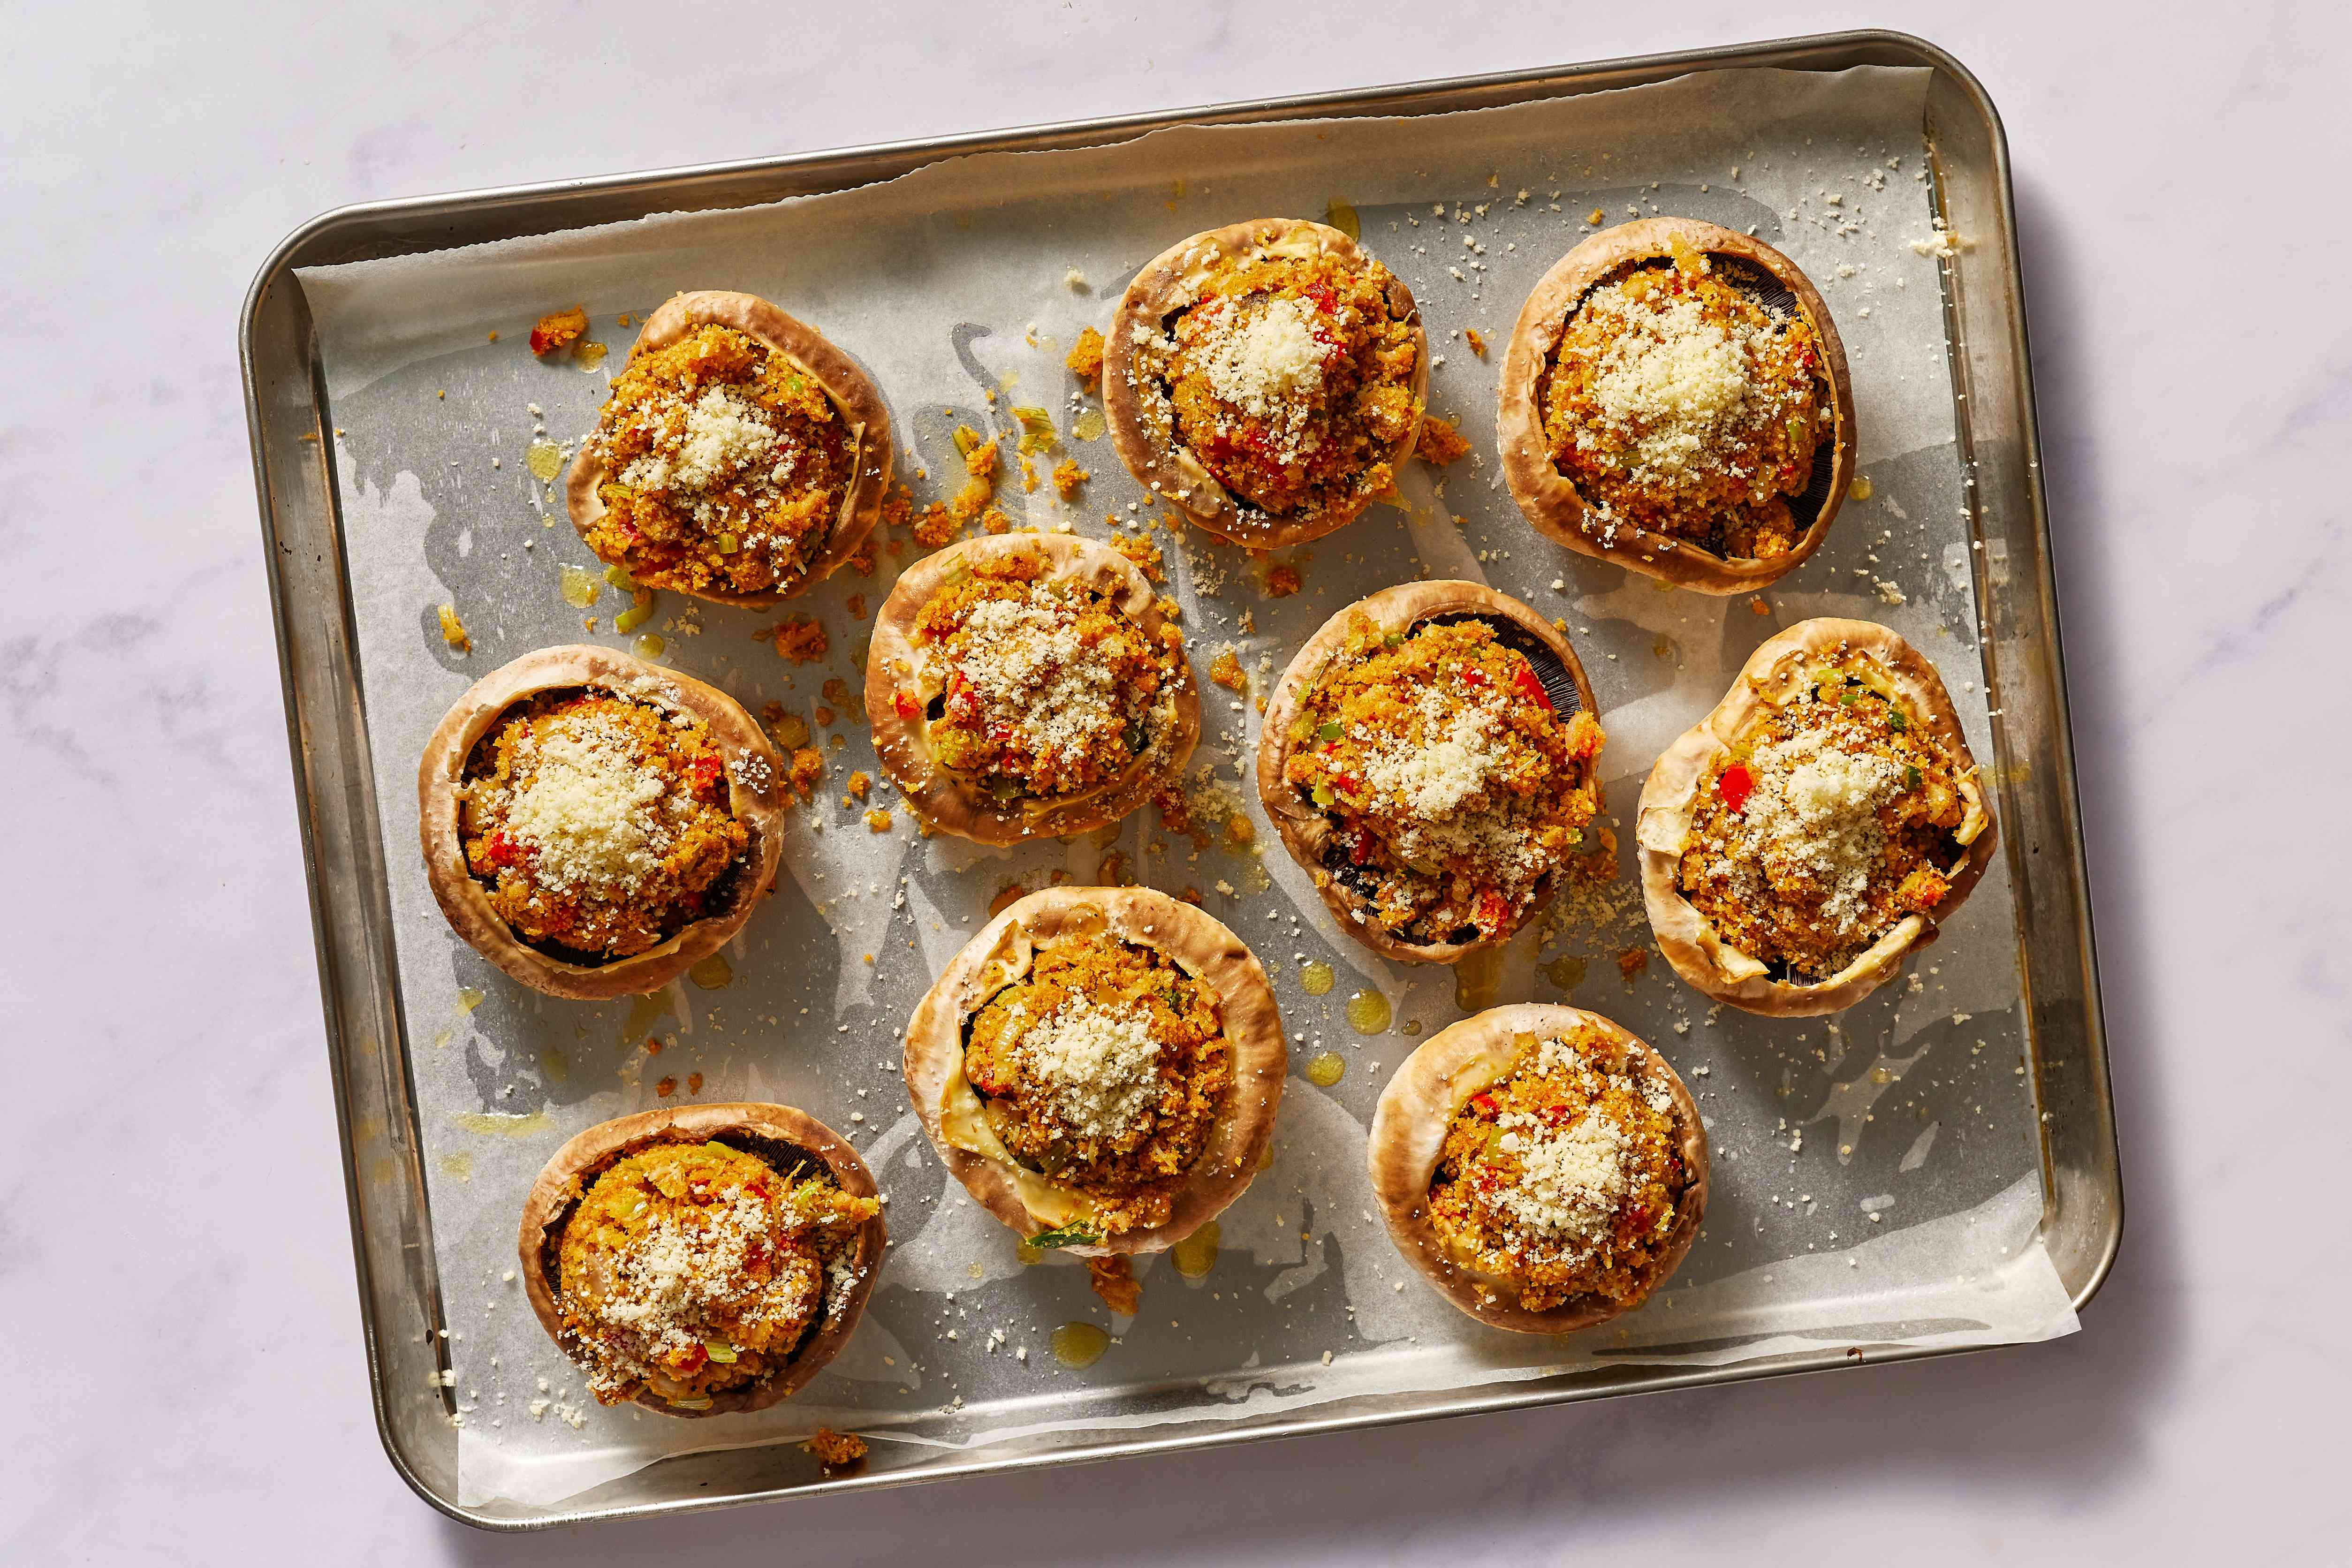 Sprinkle each filled mushroom cap with a little Parmesan cheese